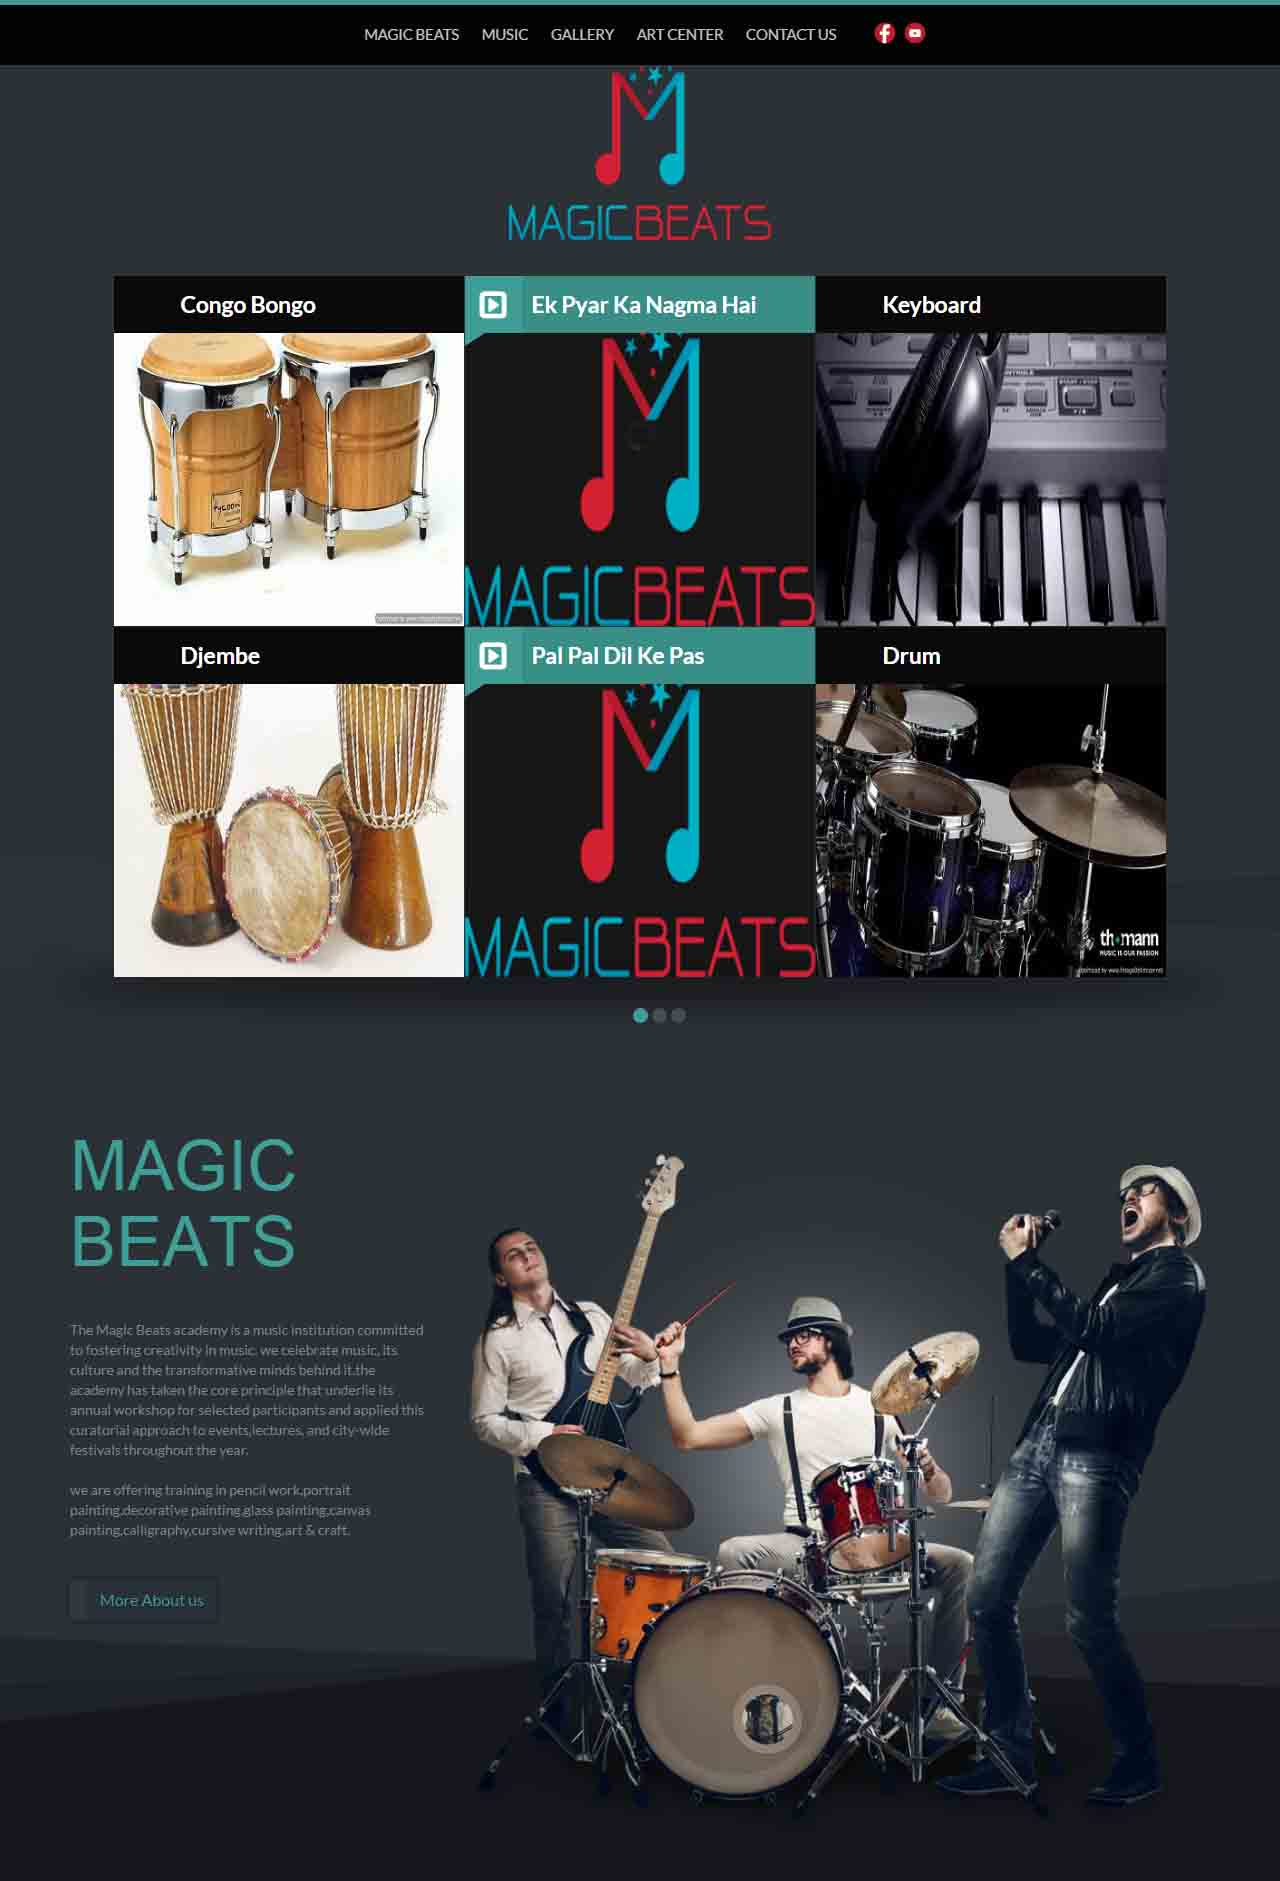 Magic Beats